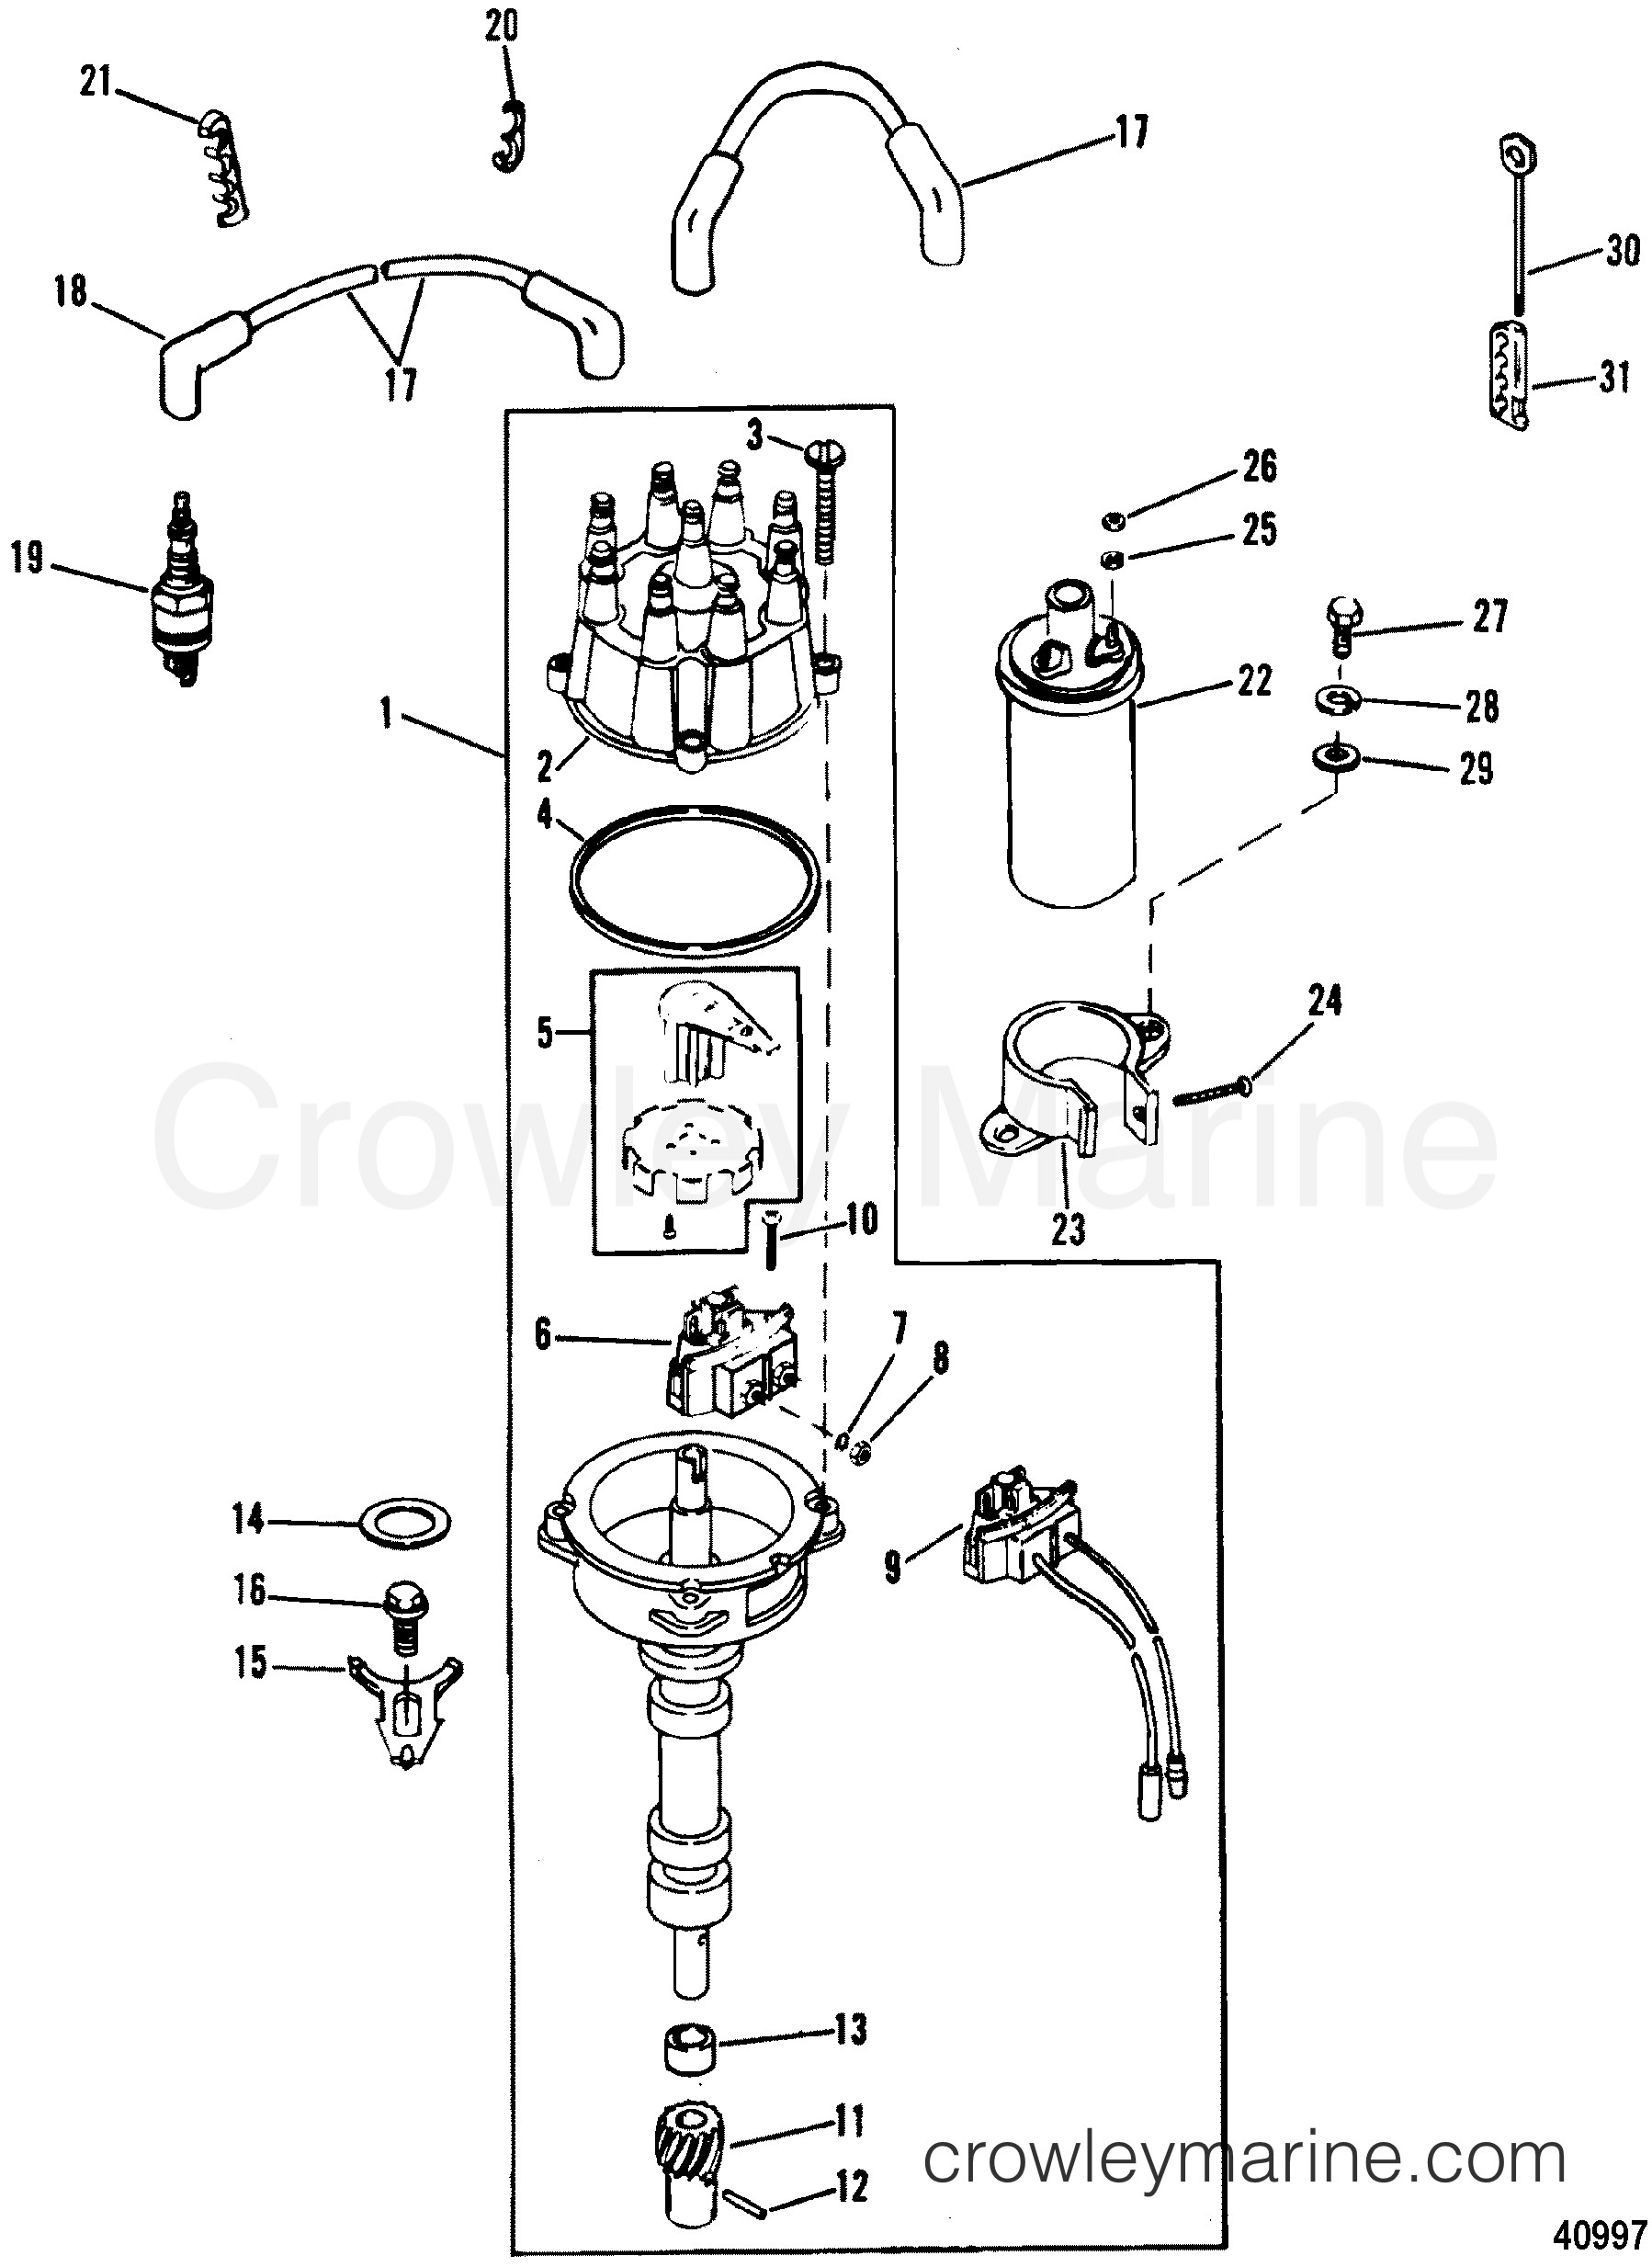 3 7 mercruiser engine diagram wiring diagram u2022 rh growbyte co Mercruiser Engine Parts Diagram Mercruiser Starter Fuse